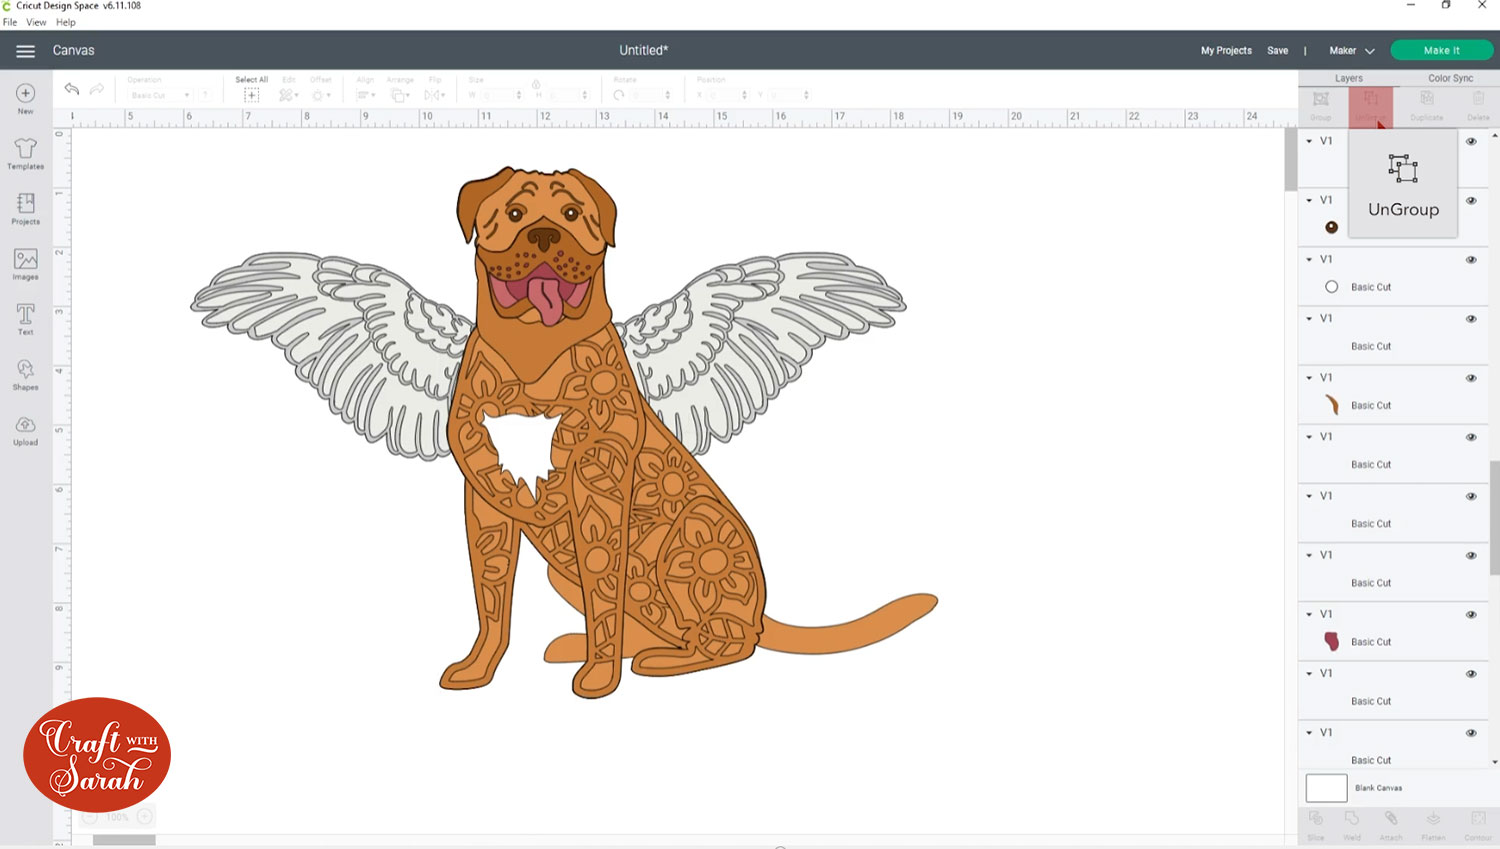 One angel wing on each side of the dog